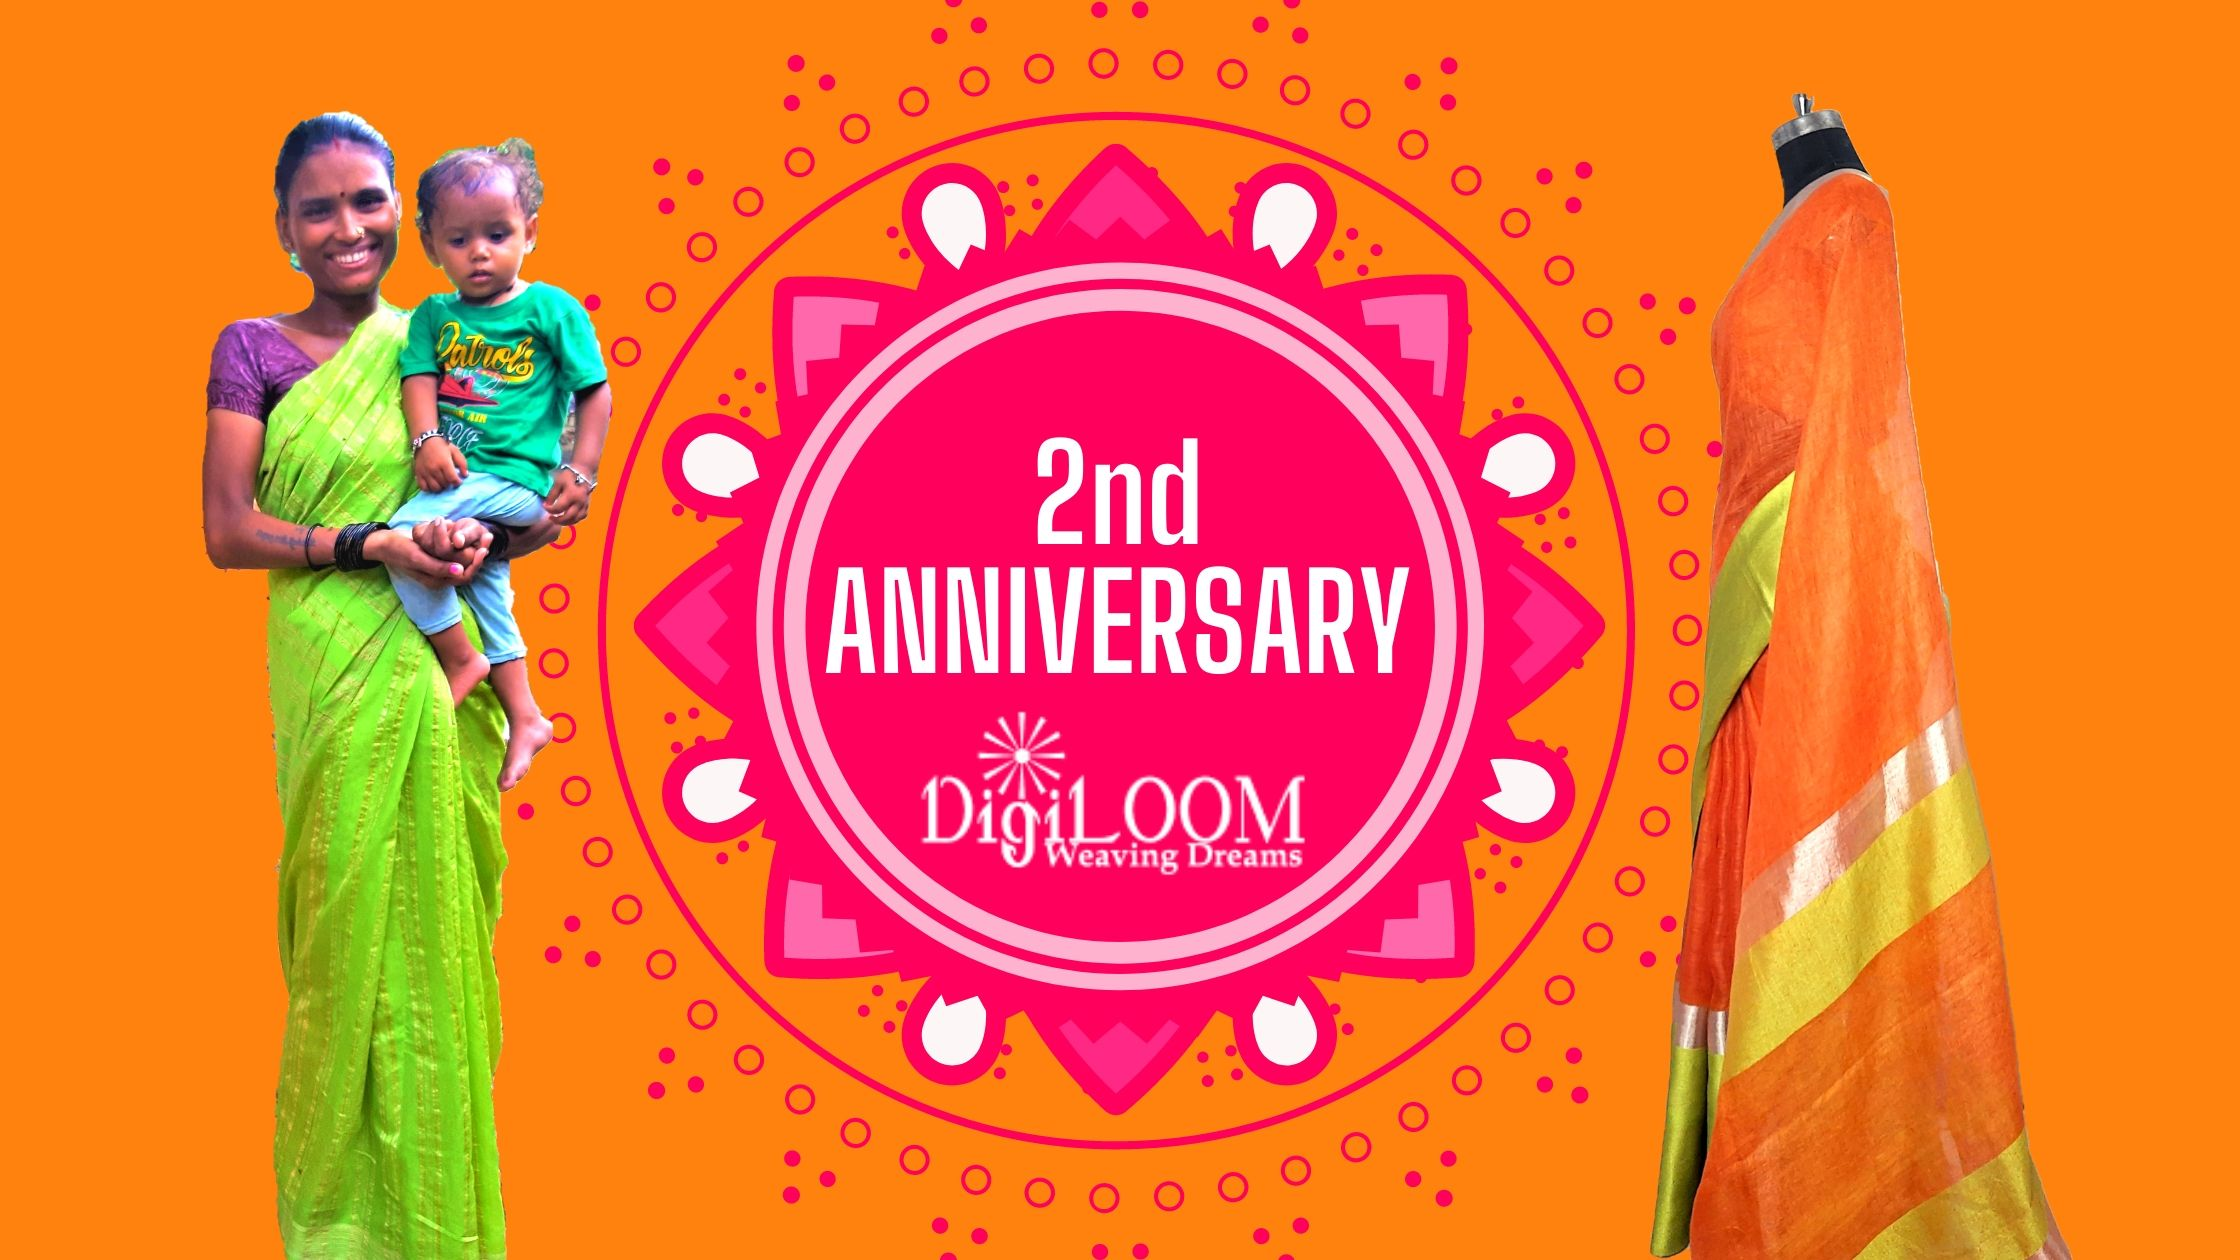 Digiloom Giveaway Contest India 2020